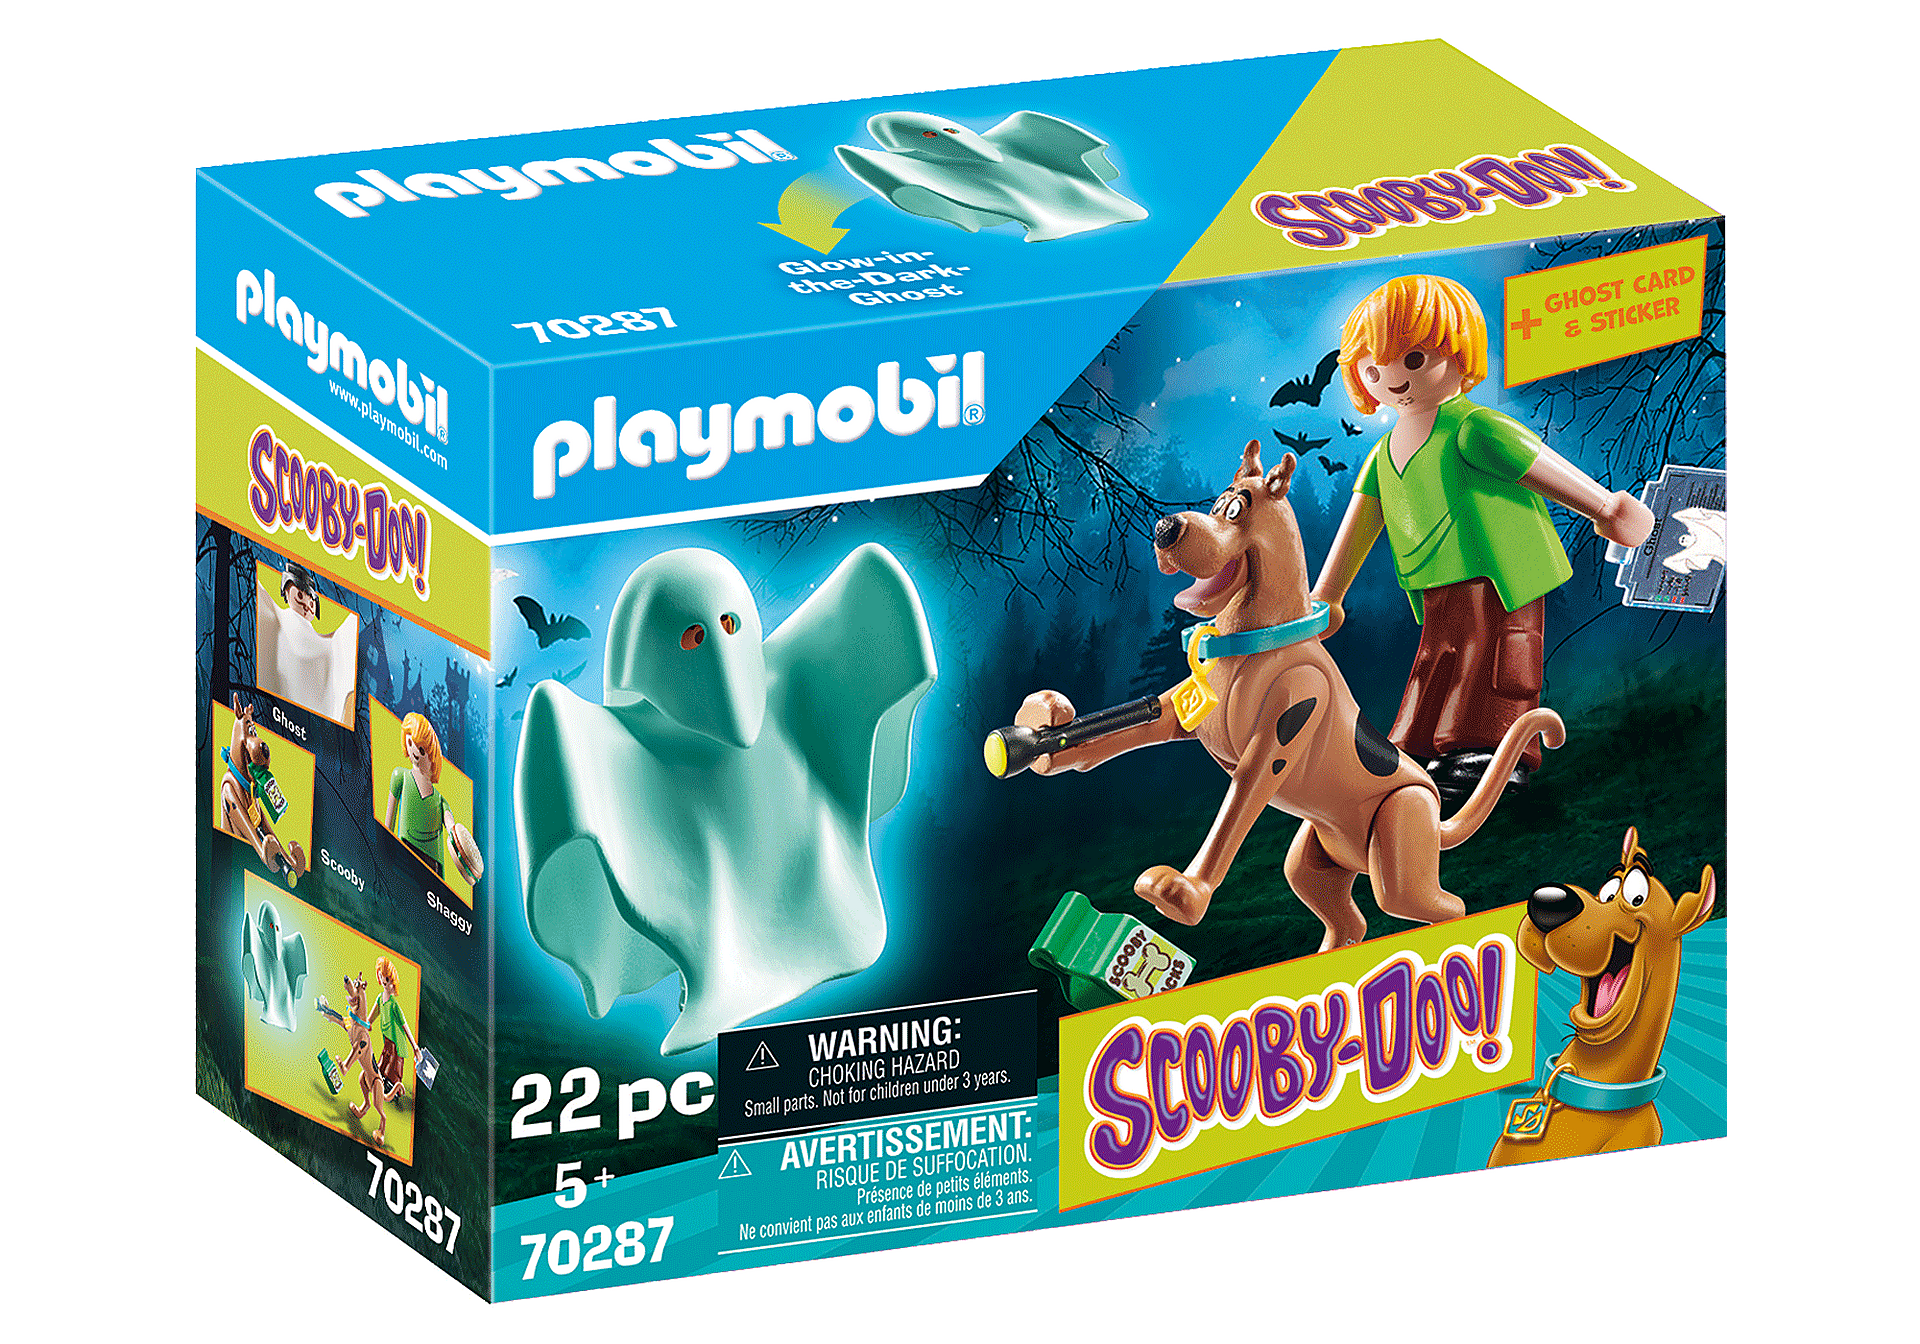 Playmobil - Scooby-Doo - Scooby & Shaggy with Ghost (70287)